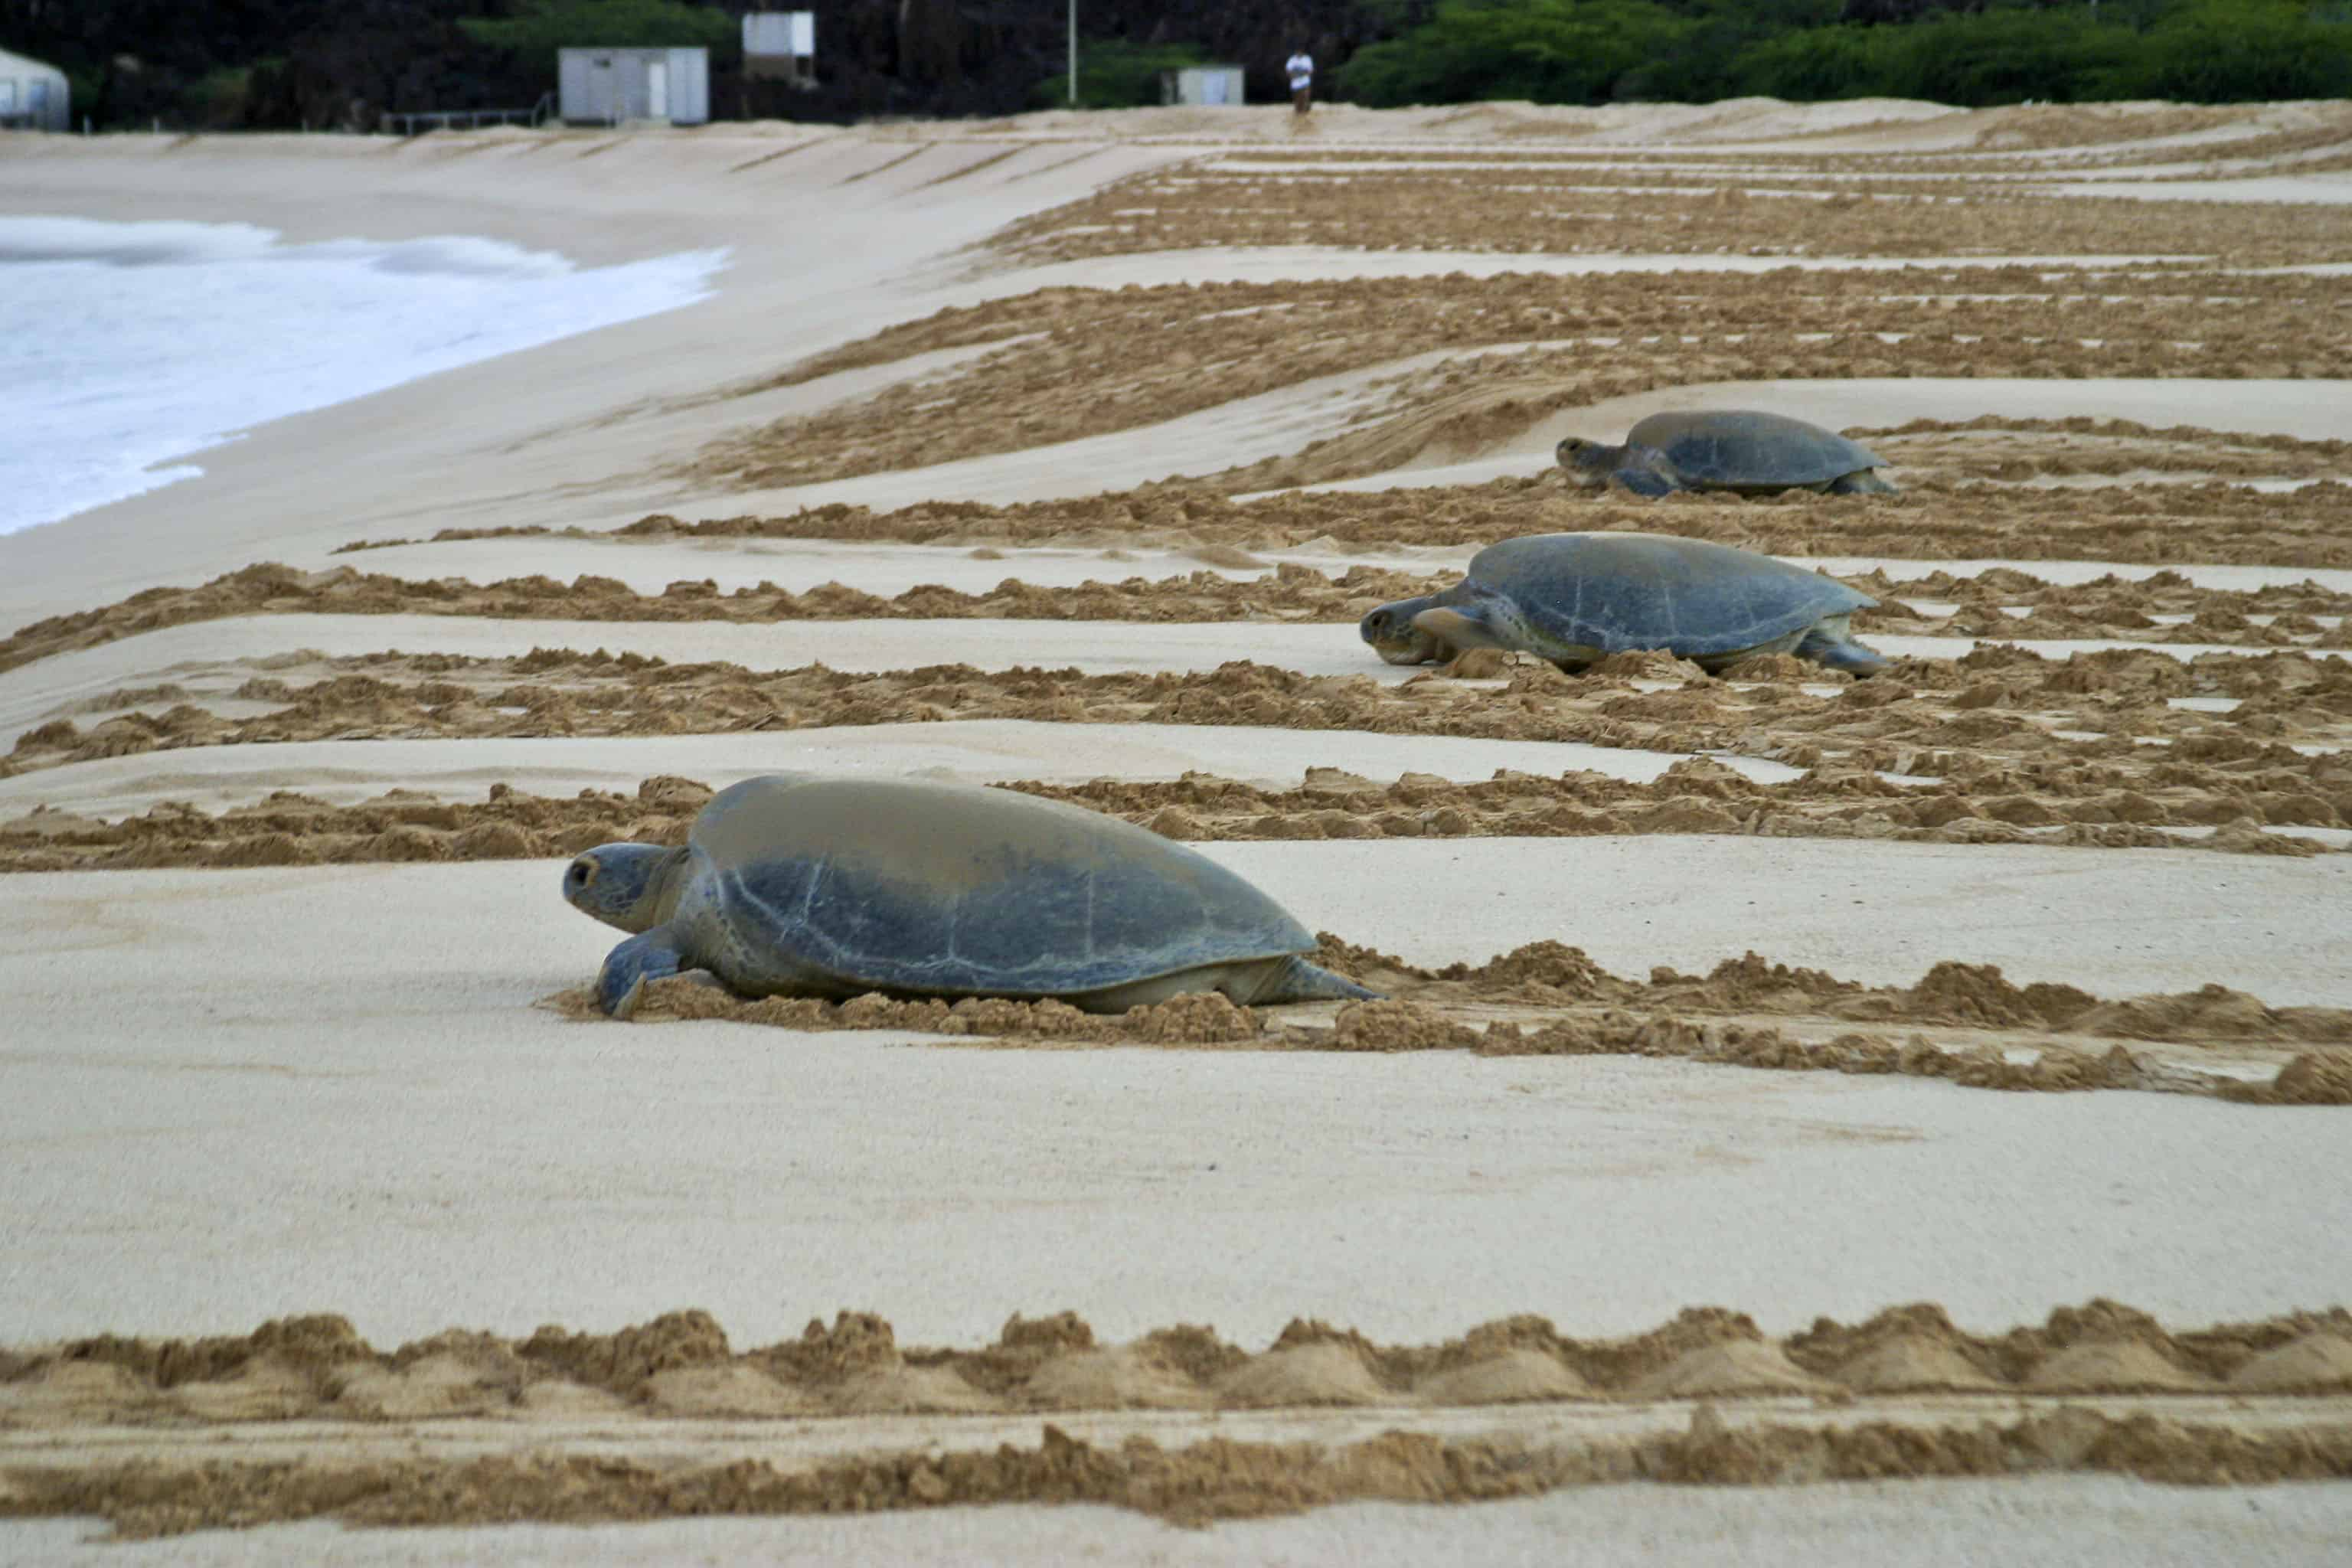 Green turtles return to sea after egg-laying on the main colony beach beside Georgetown. Copyright: Dr Mike Pienkowski